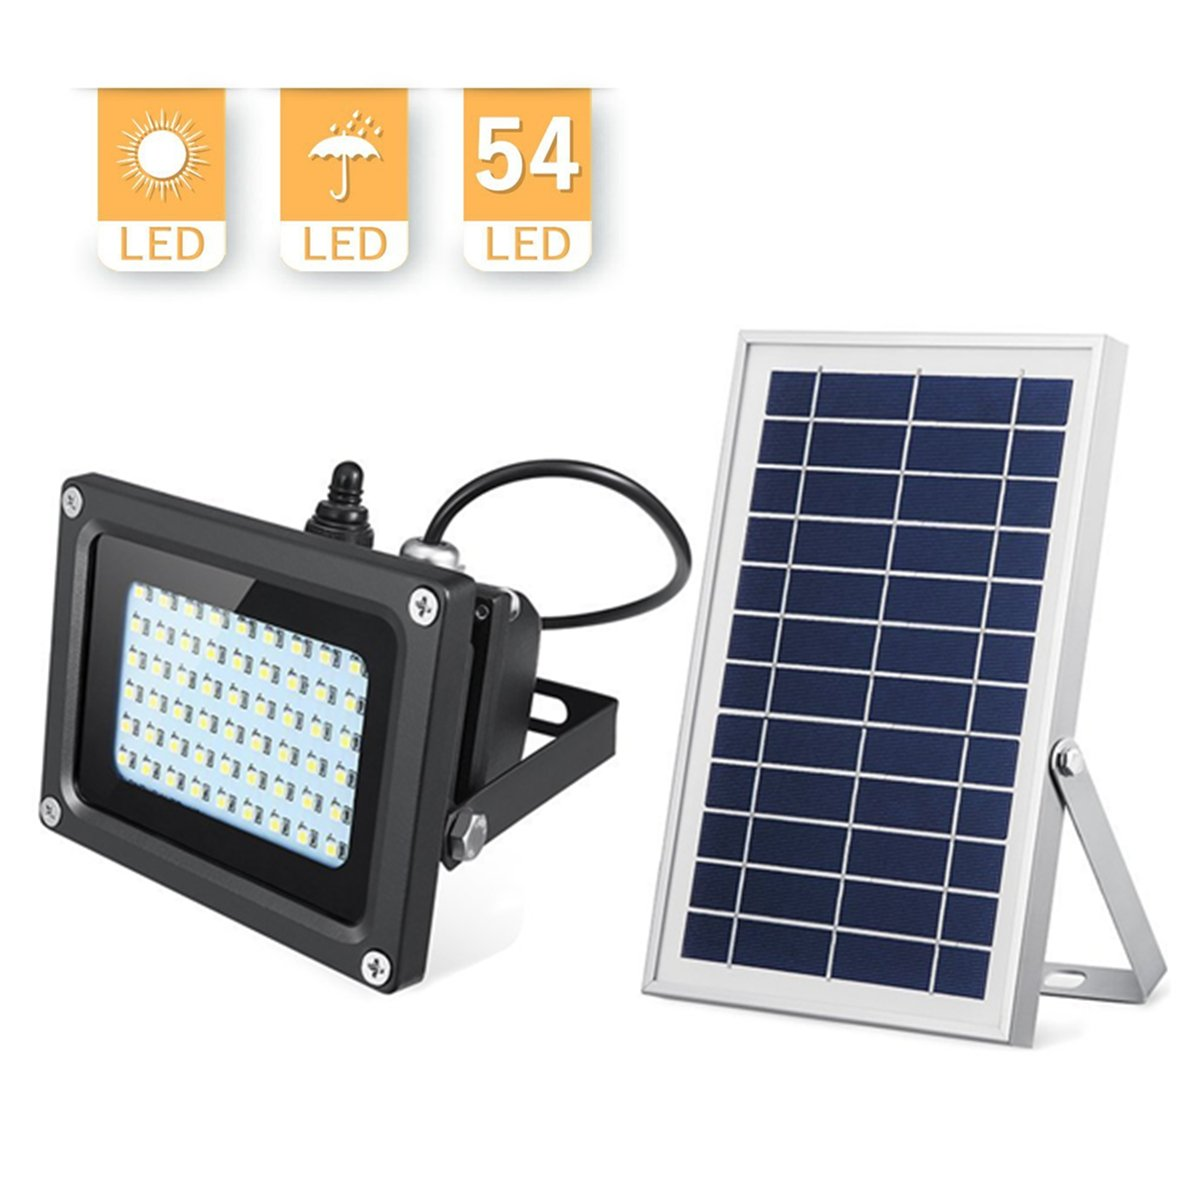 Solar Lights Outdoor, KingSo 6V 6W Higher Power Solar Panel LED Flood Light, Waterproof IP65 Light Sensor Security Light for Garden Farm Shed Garage Yard Hotel Square Mall Lawn Pool Driveway